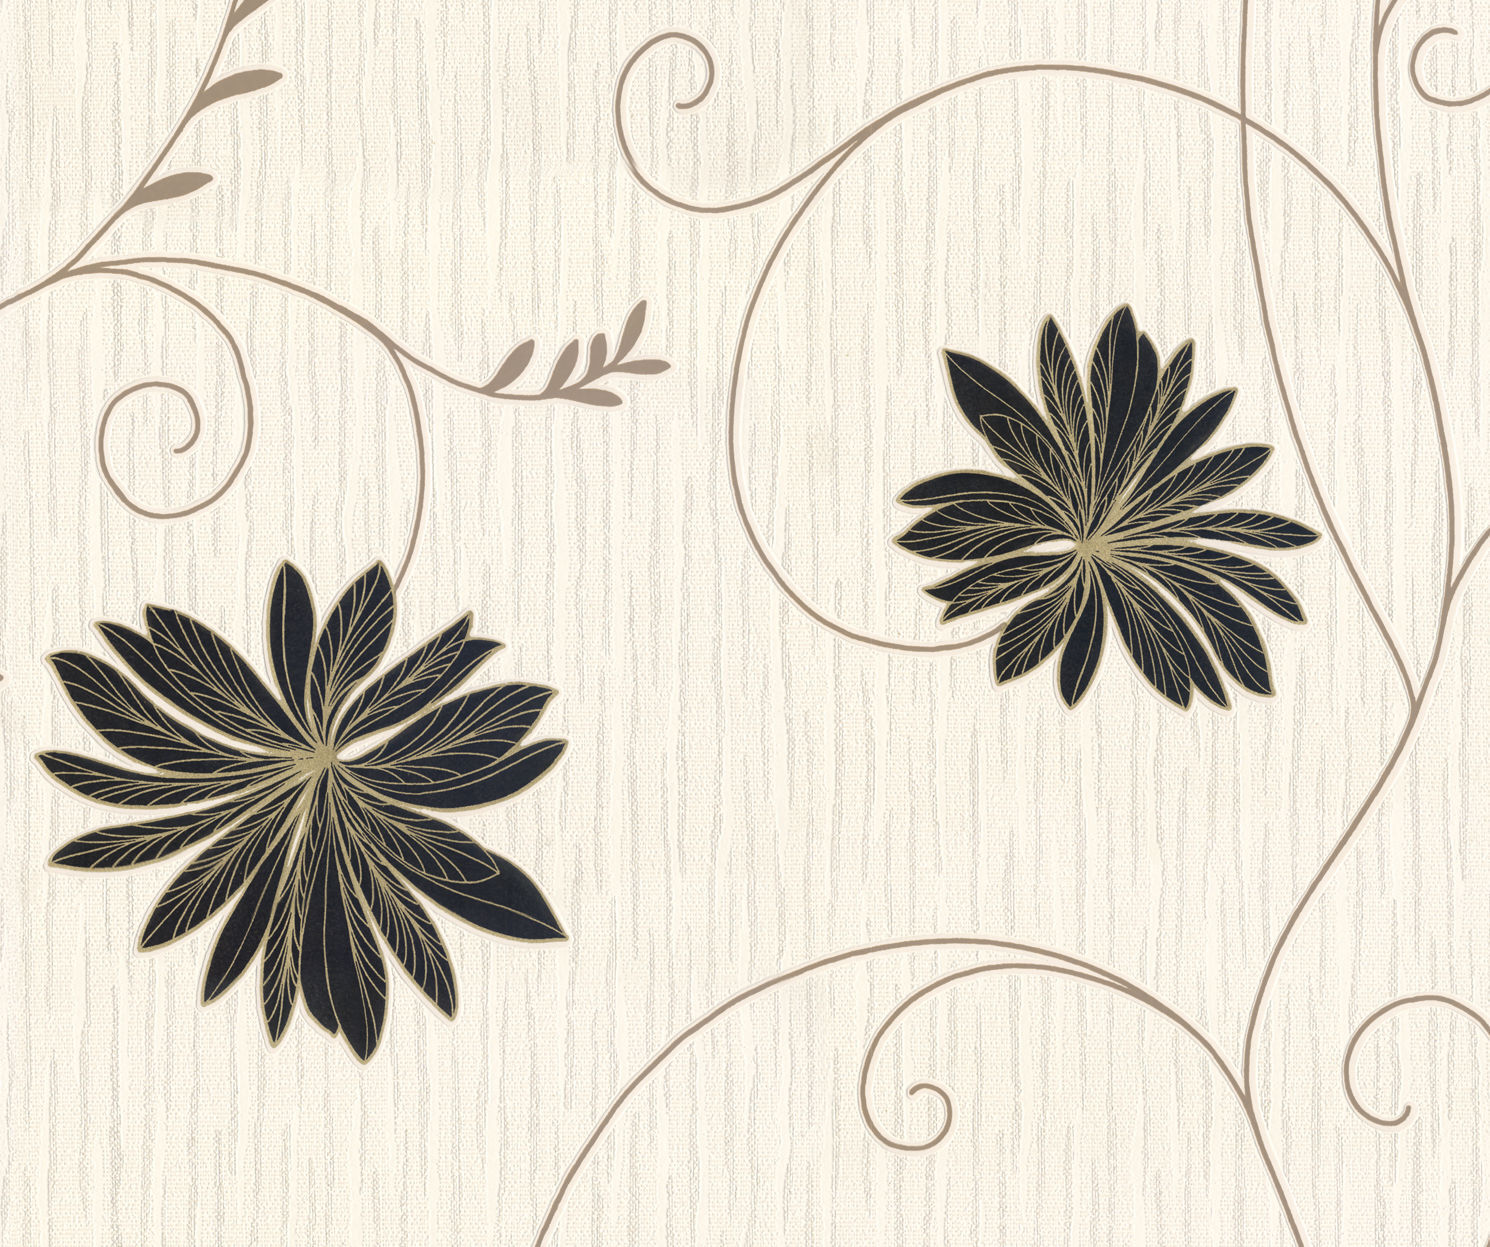 BELGRAVIA GOLD BLACK CREAM FLORAL FLOWER TEXTURED QUALITY FEATURE WALLPAPER 6153